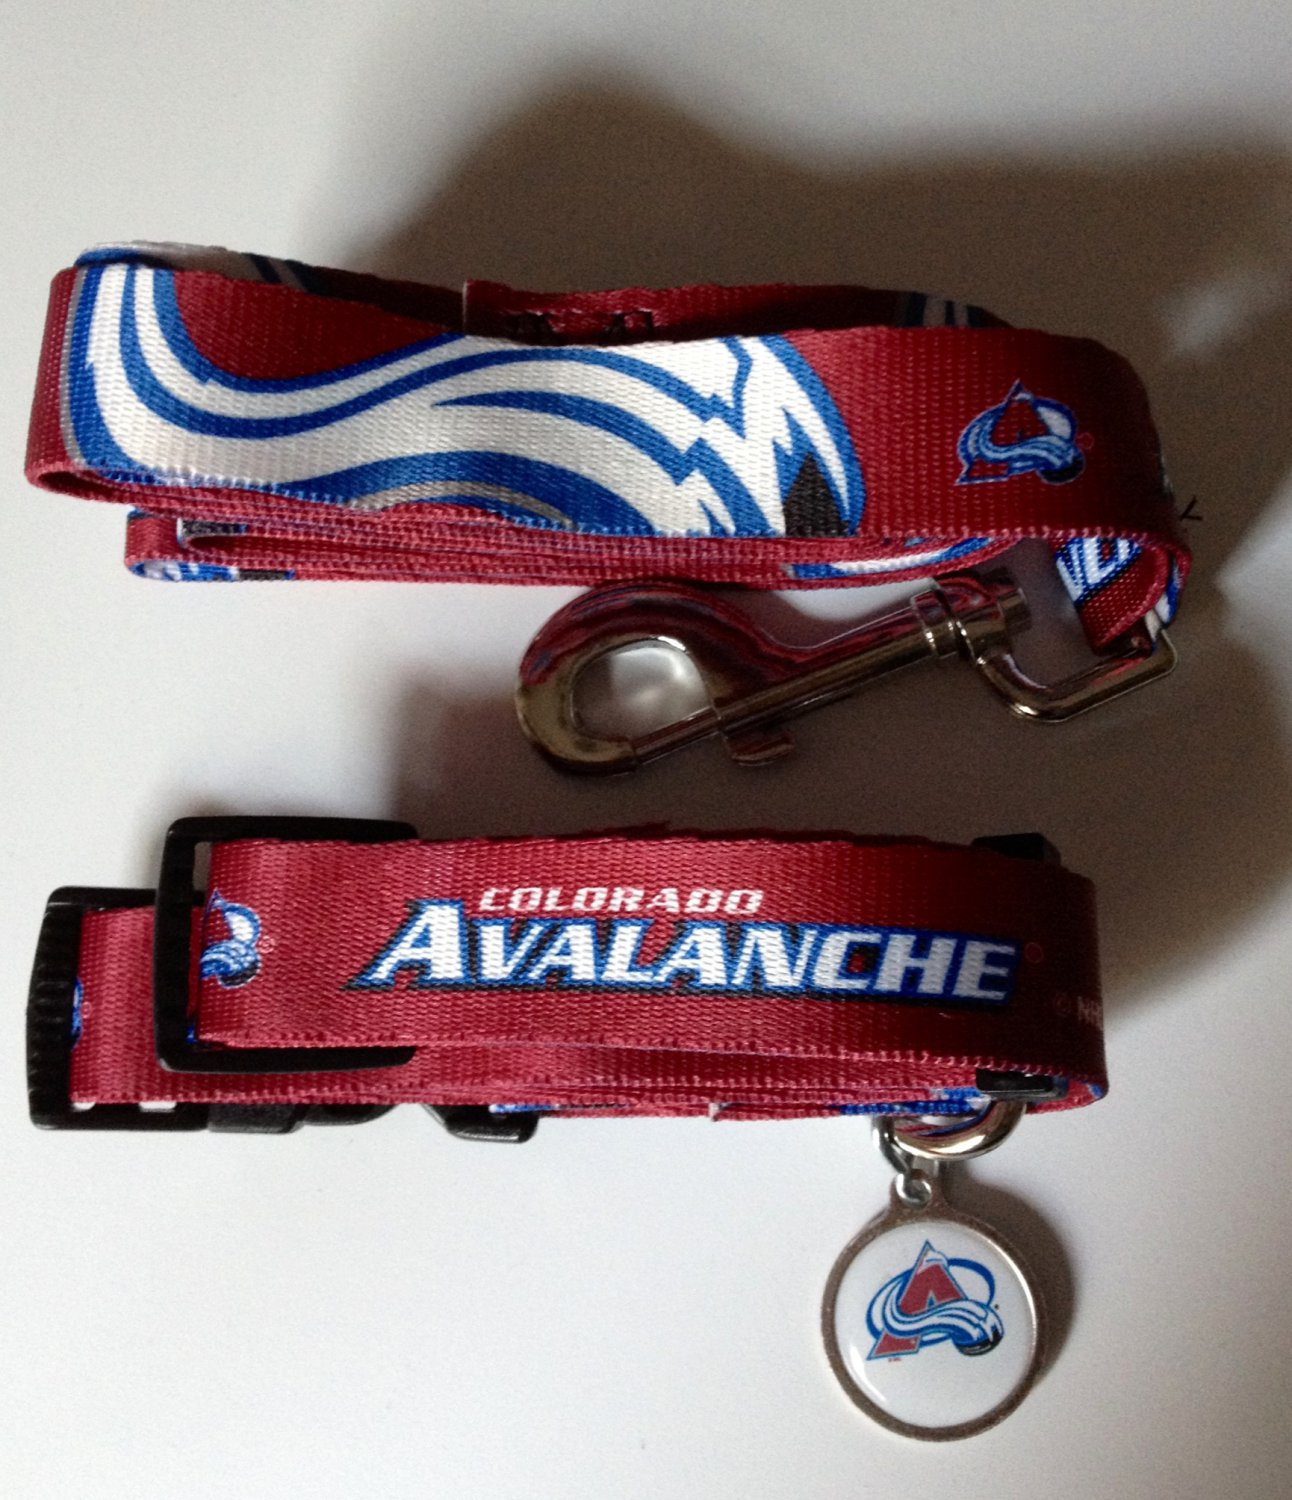 Colorado Avalanche Pet Dog Leash Set Collar ID Tag Medium